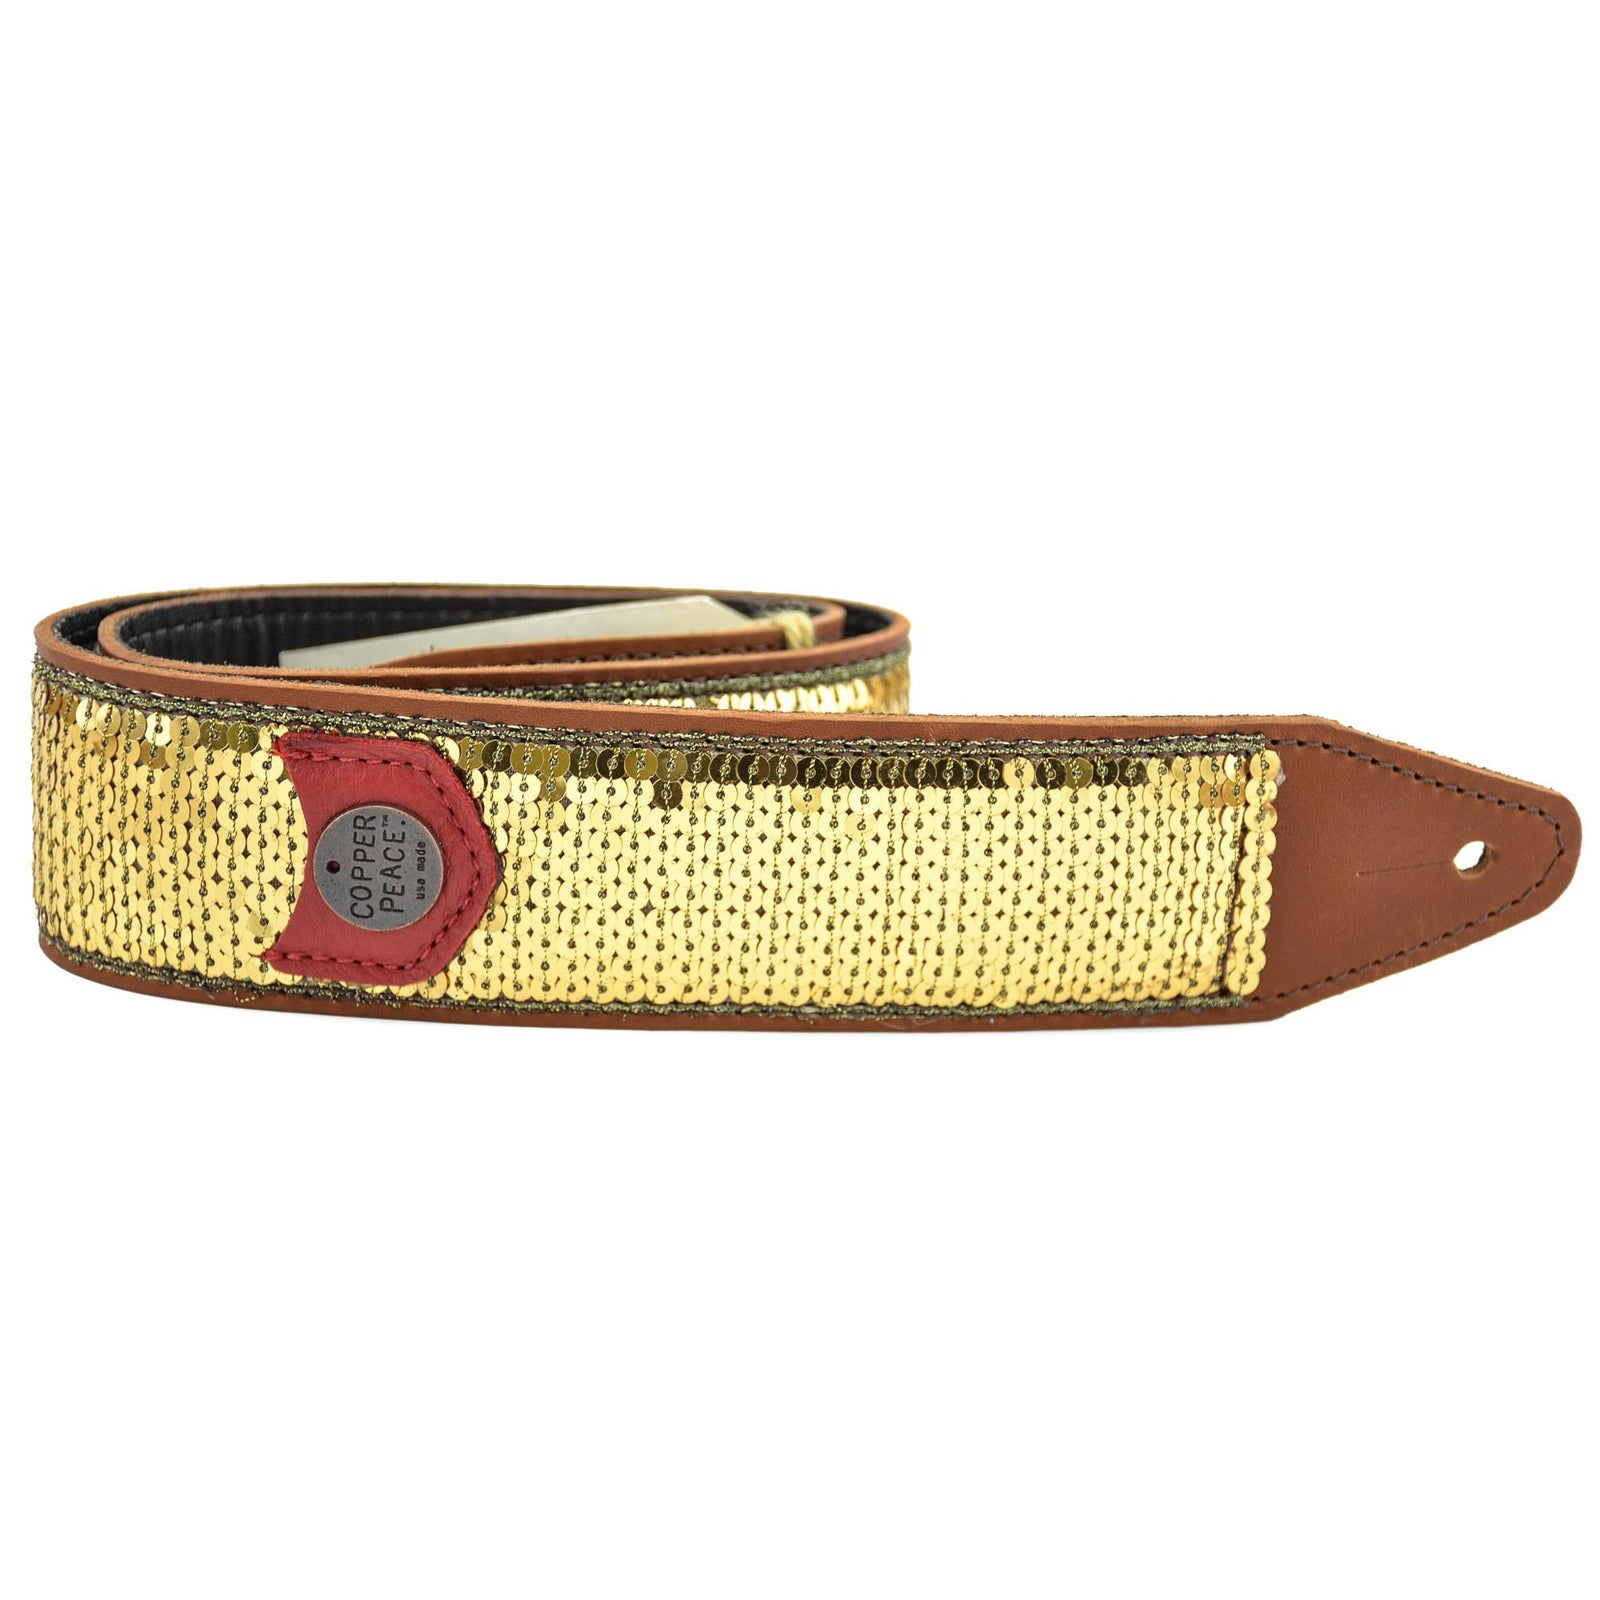 Copperpeace Glovely Gold Sequined Guitar Strap